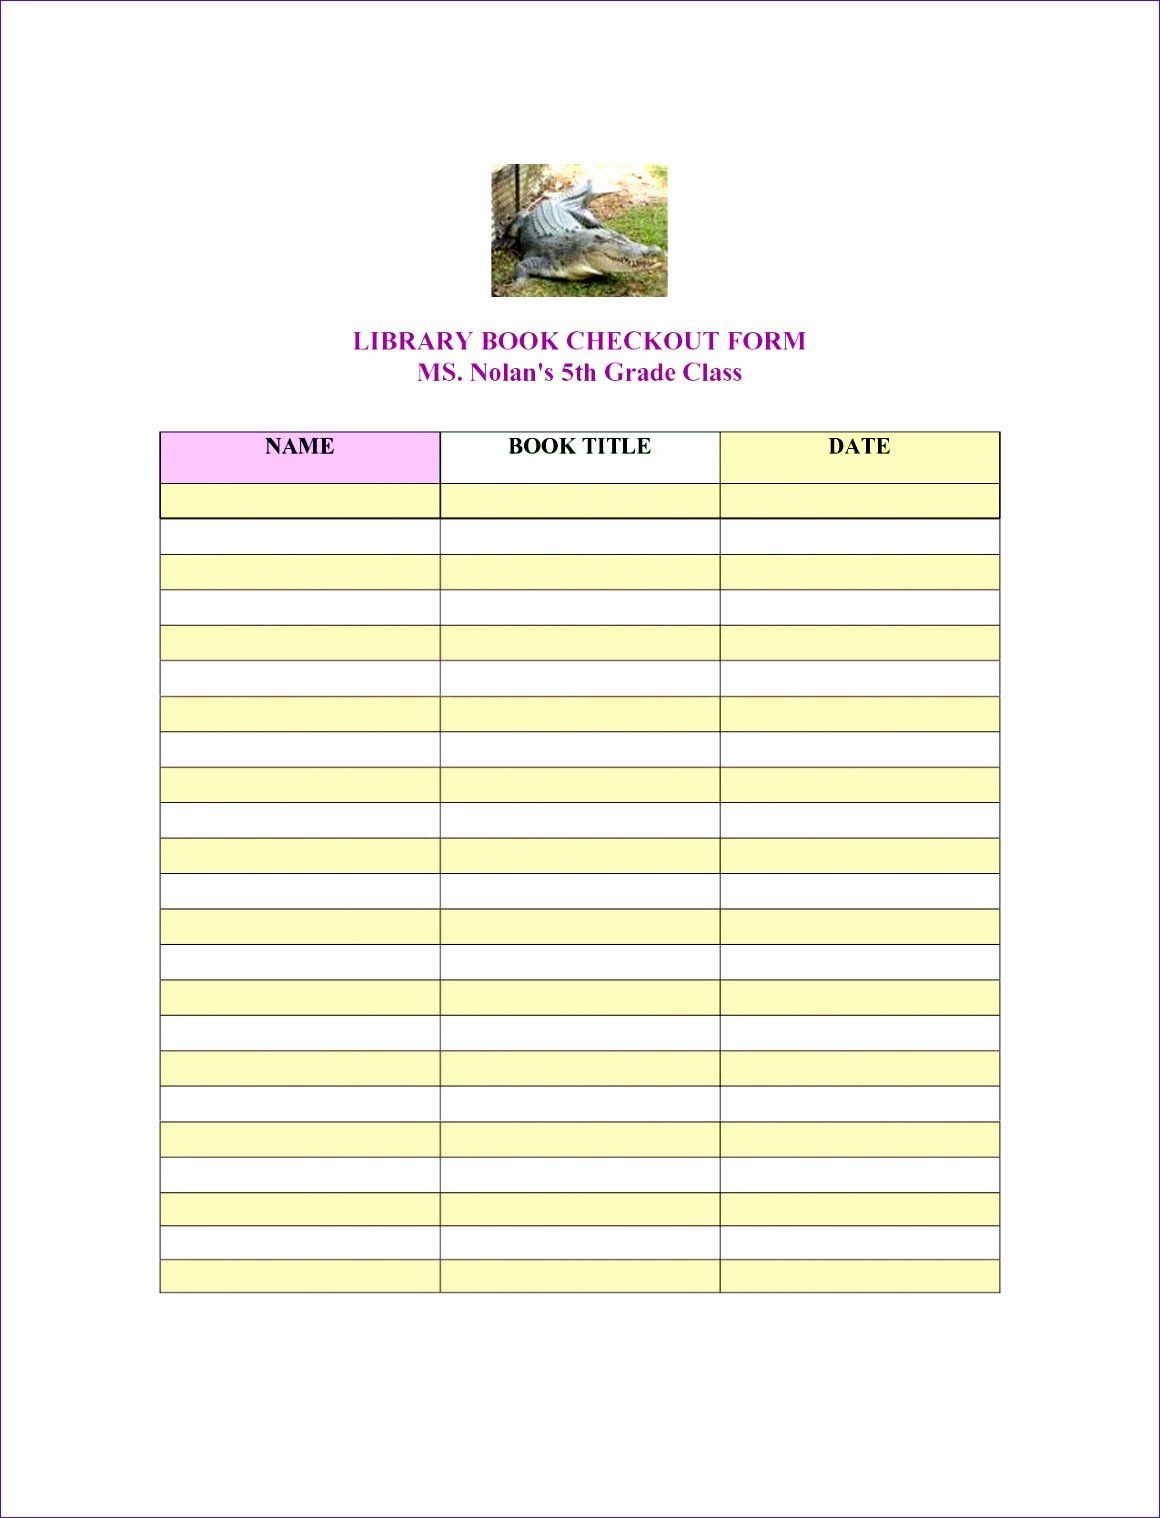 Library Checkout Cards Template Luxury Library Book Checkout Sheet Haojc Ideas Best S Card Template Card Templates Holiday Card Template